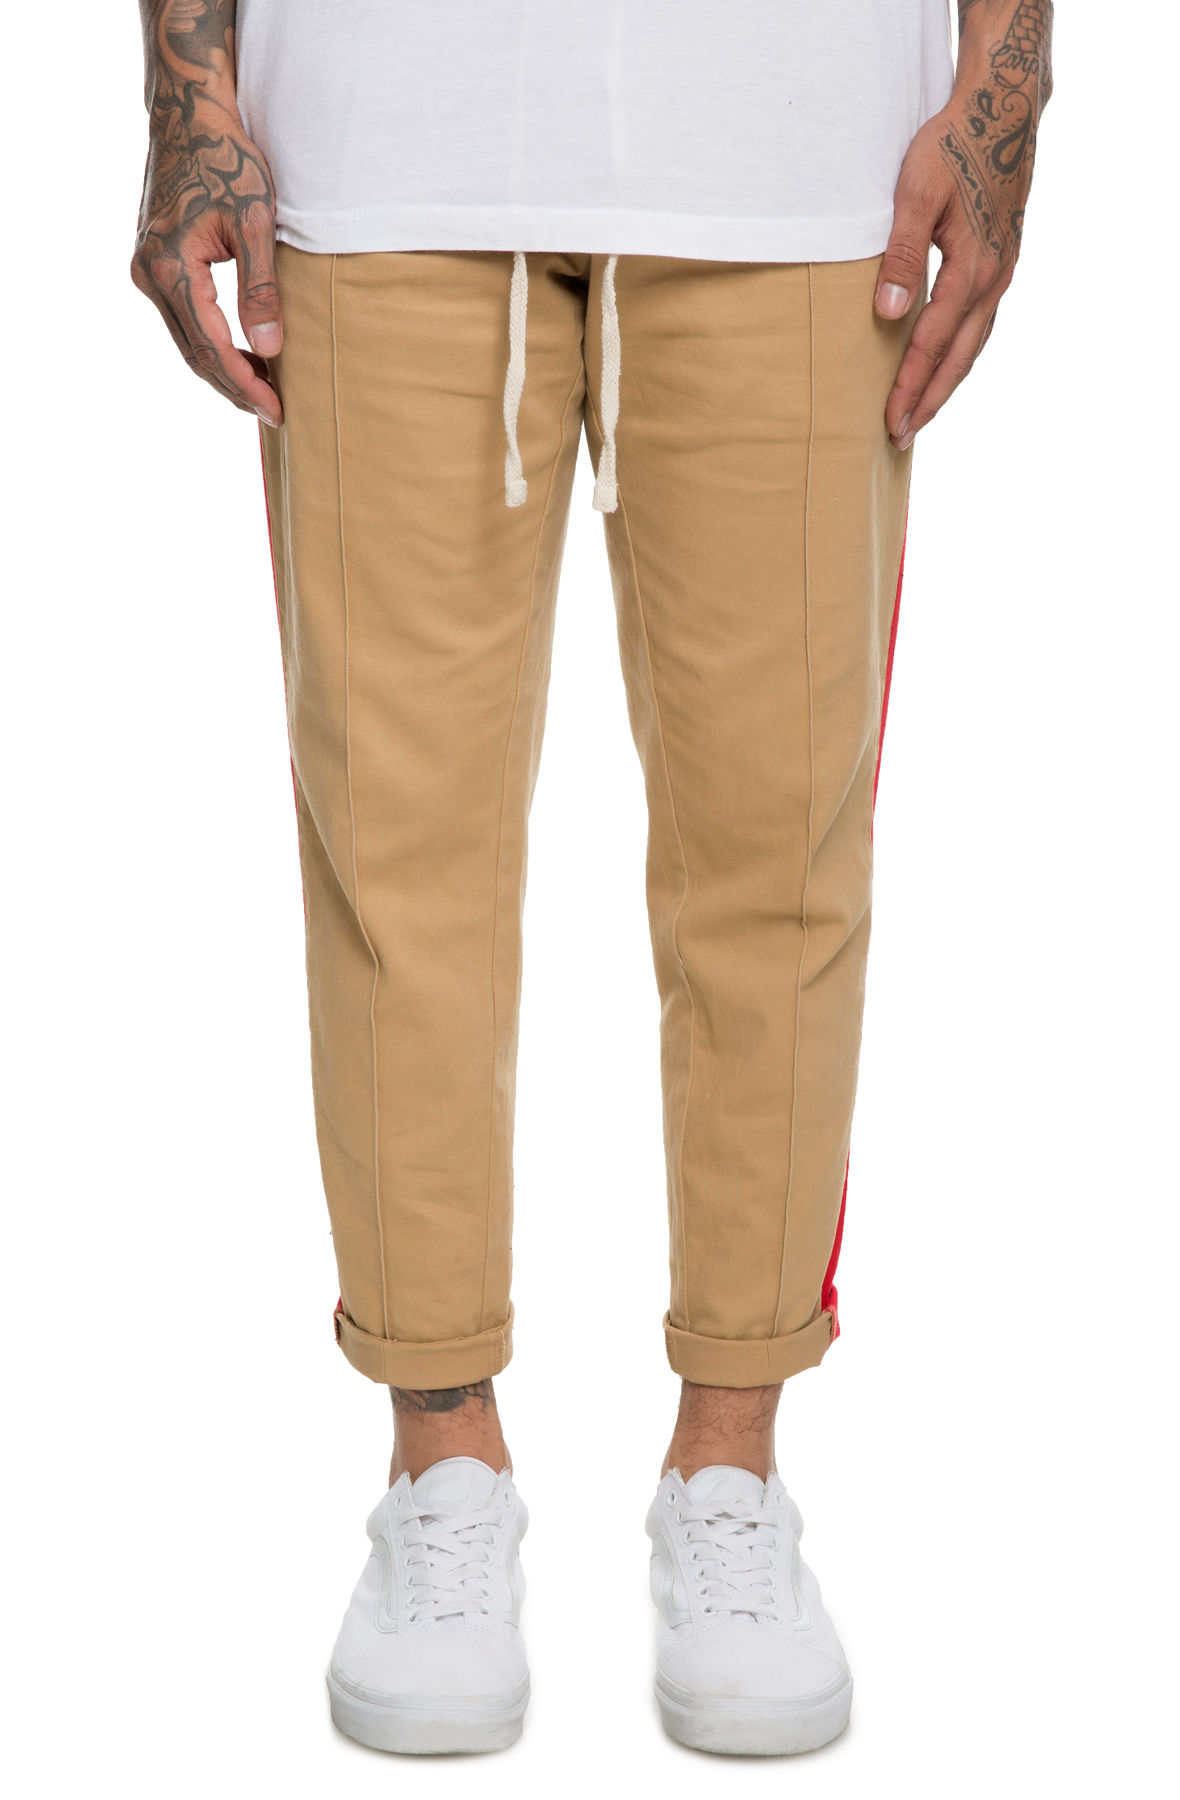 The Cropped Striped Trousers in Tan and Pink